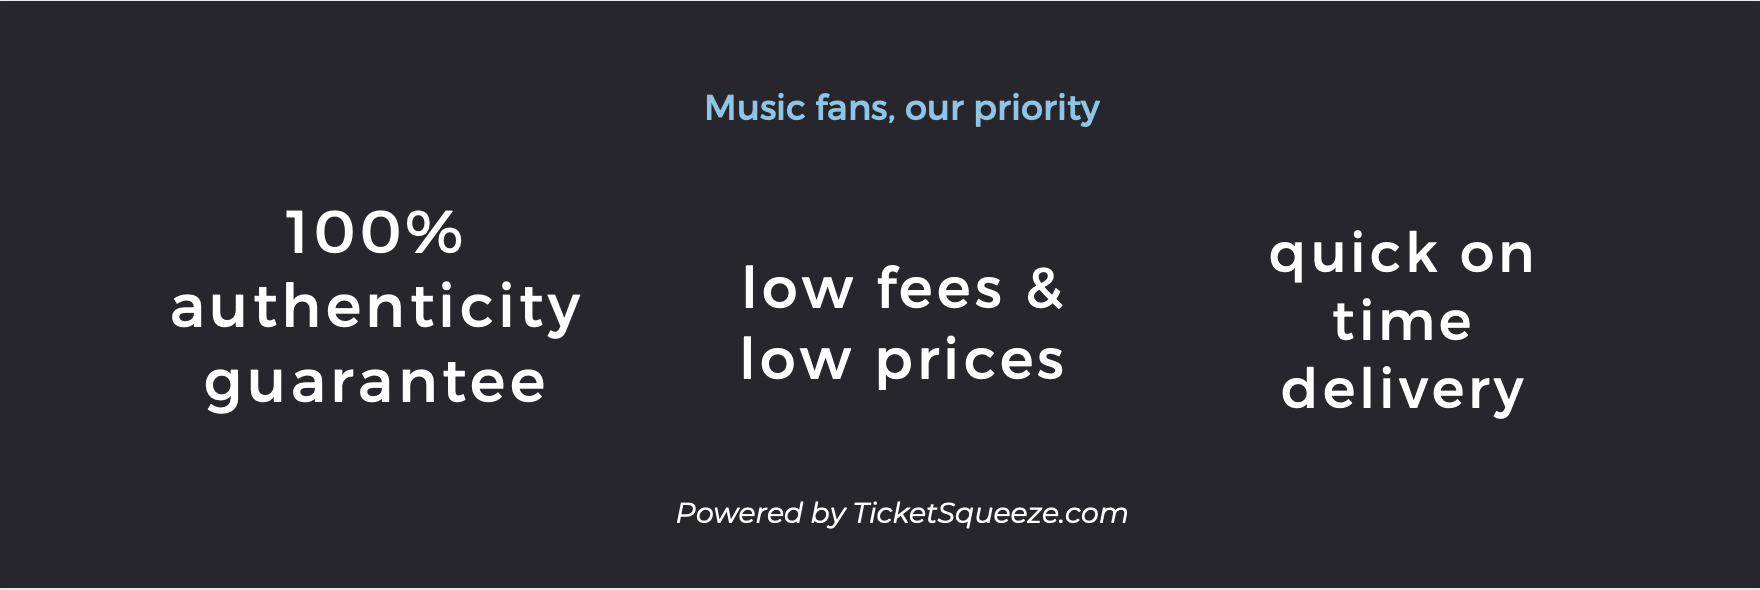 blossom music center ticket squeeze